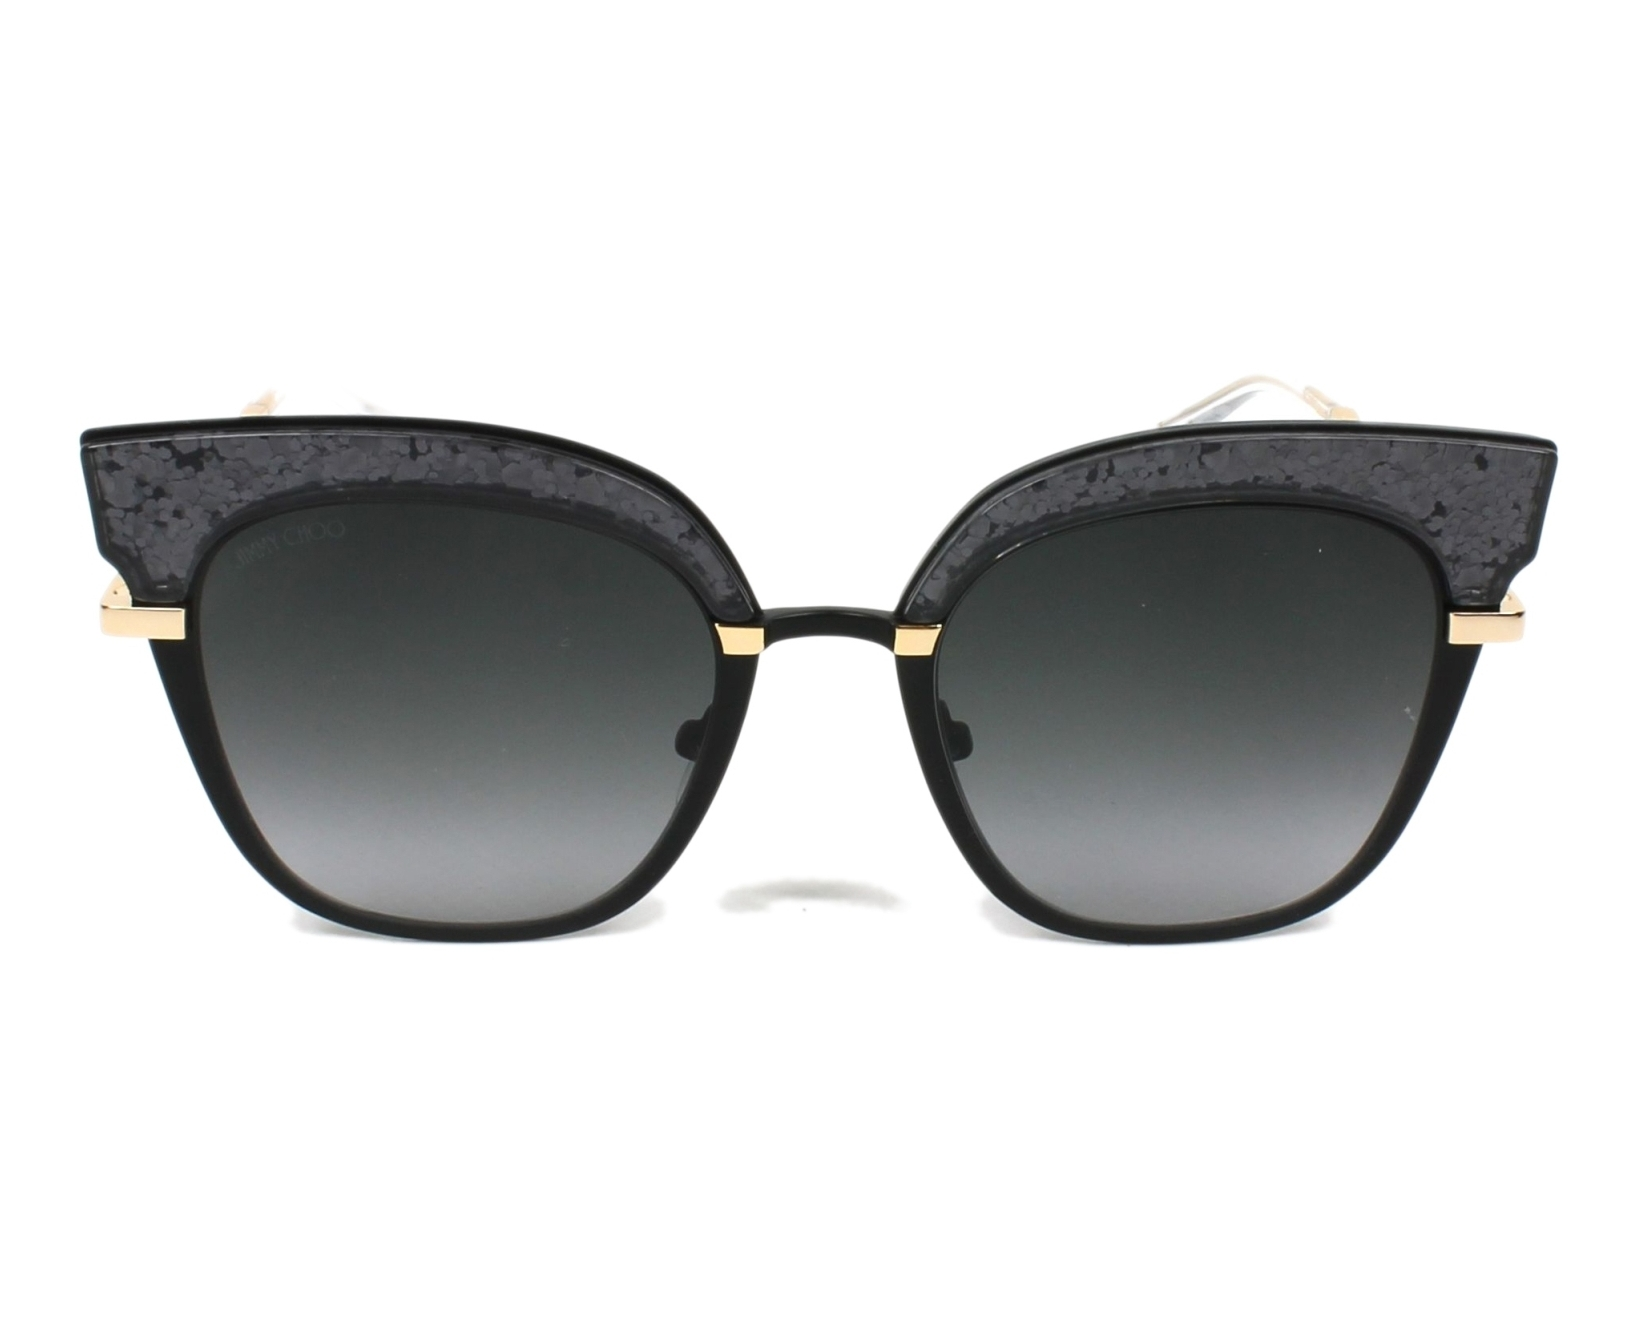 6ae12478ebec4 Sunglasses Jimmy Choo ROSY-S THP 90 51-20 Black Gold front view